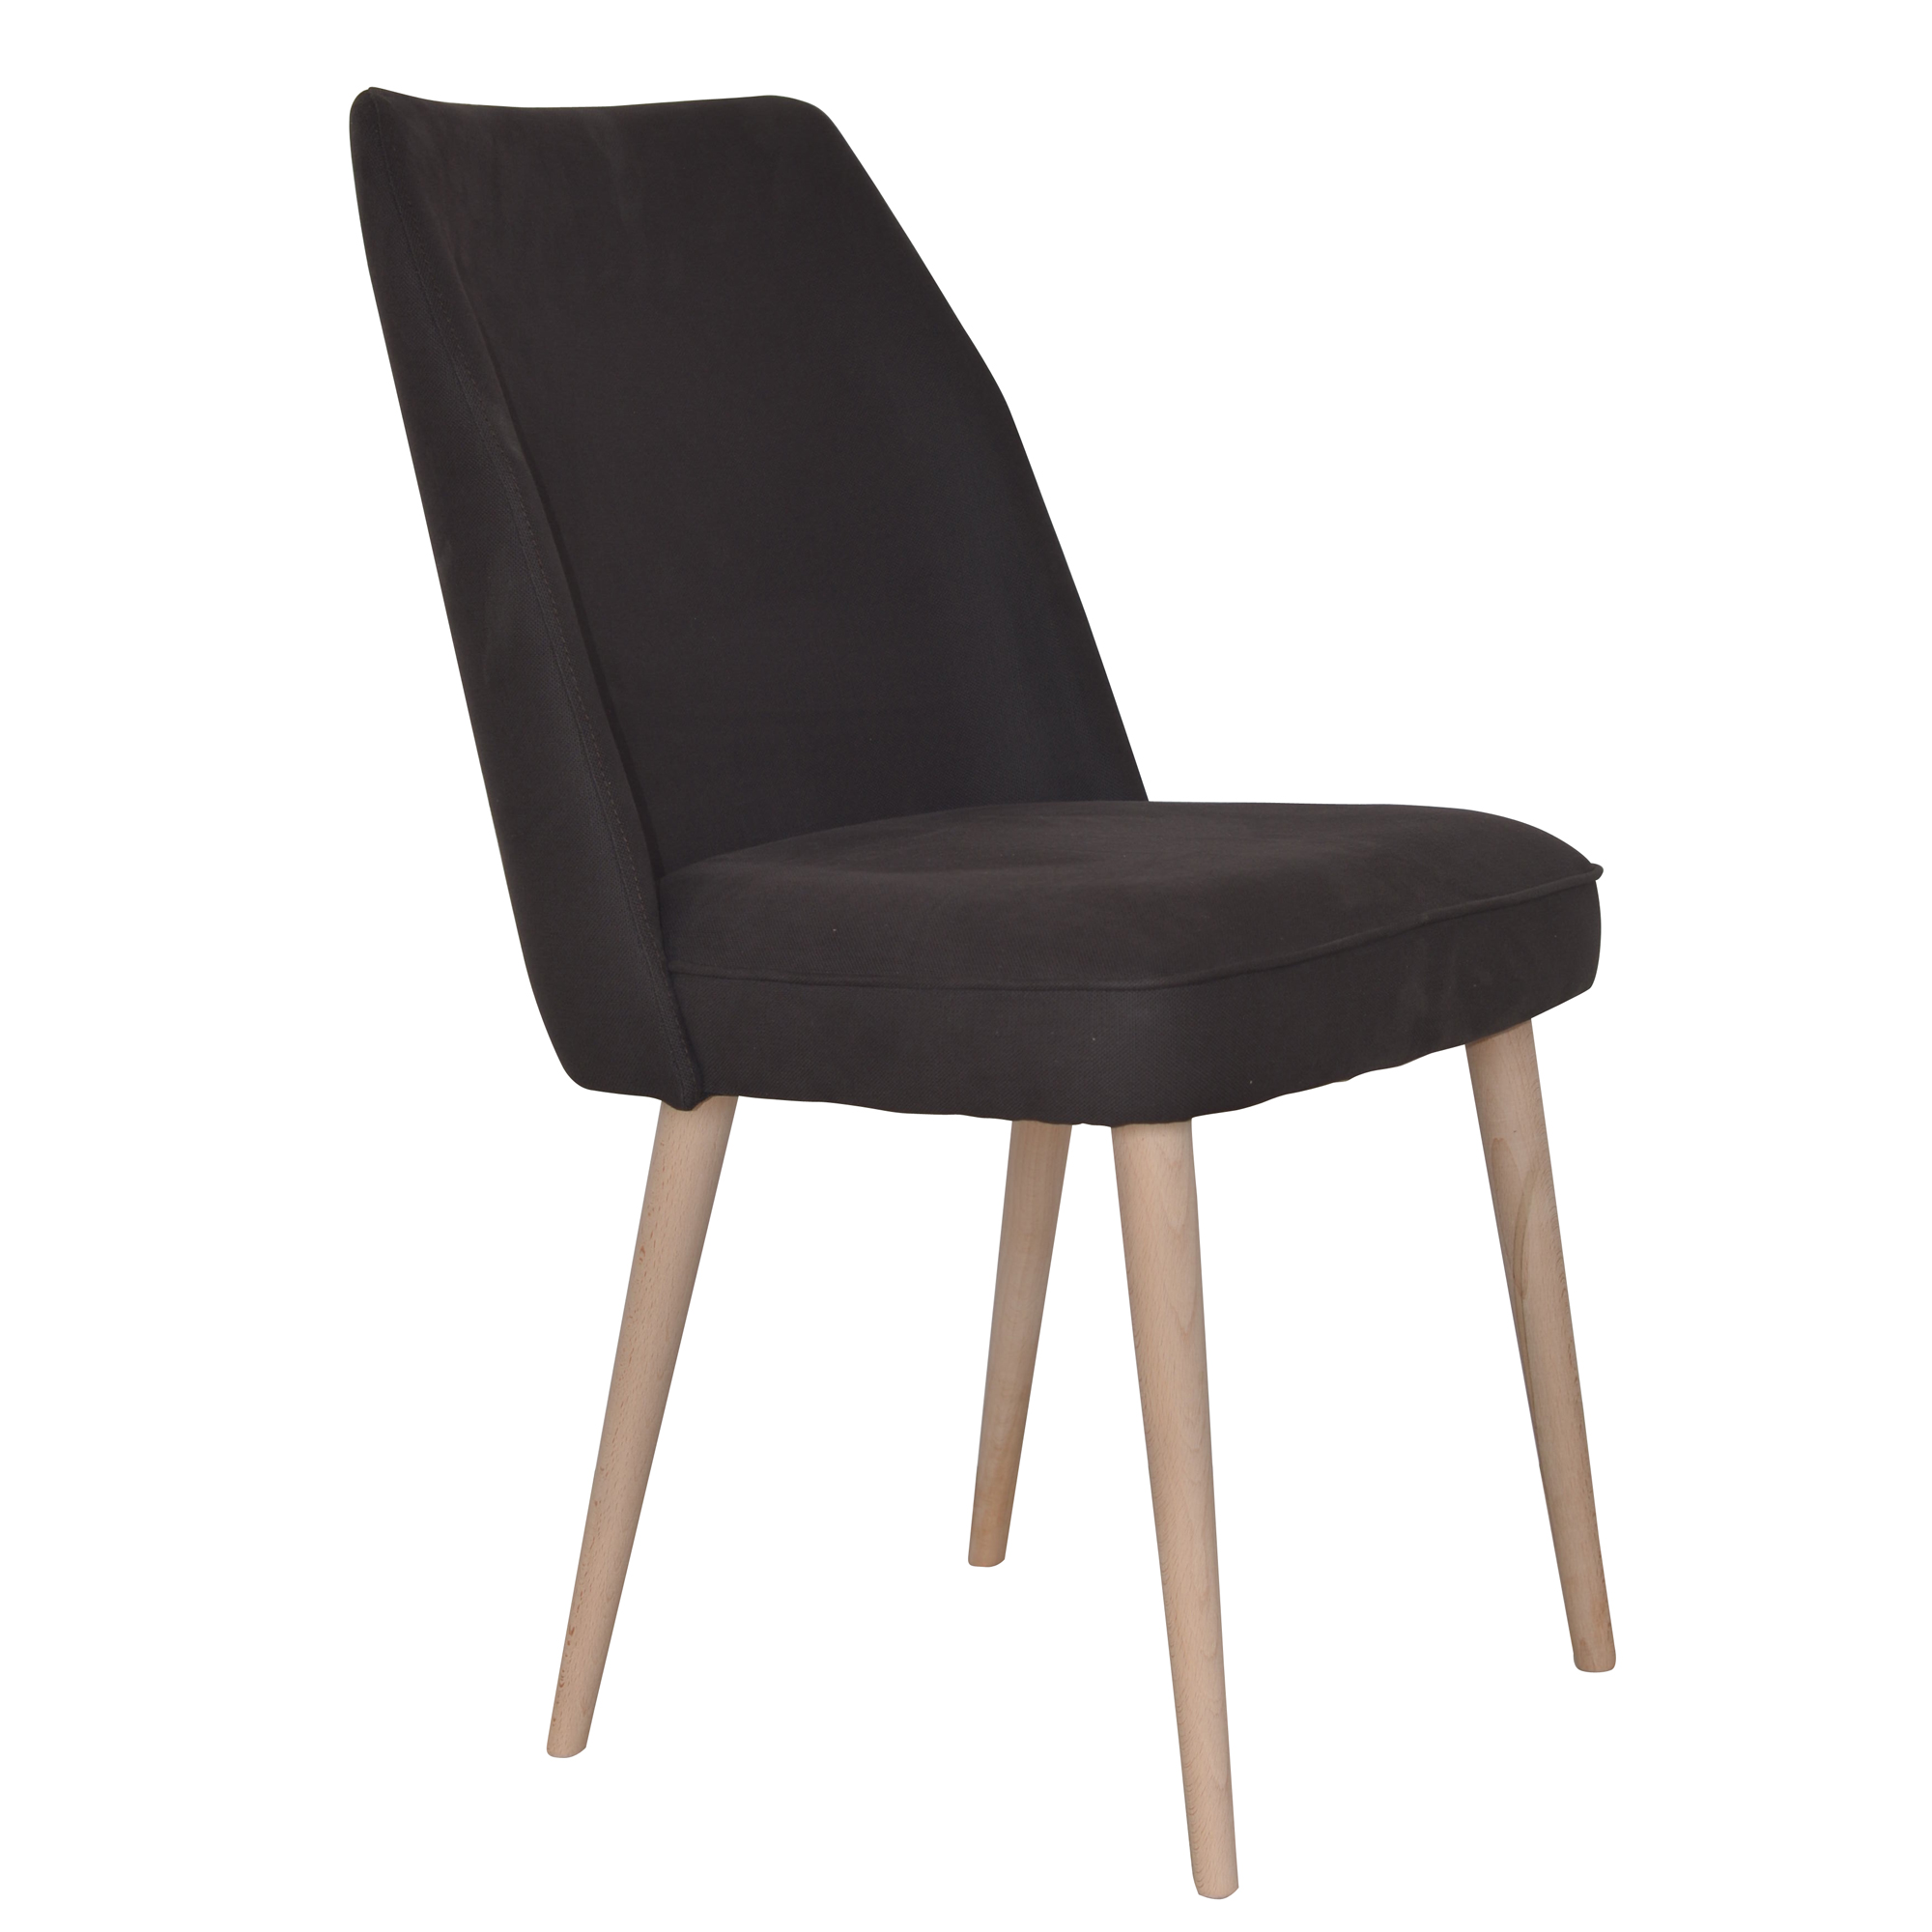 French Lyon Dining Chair